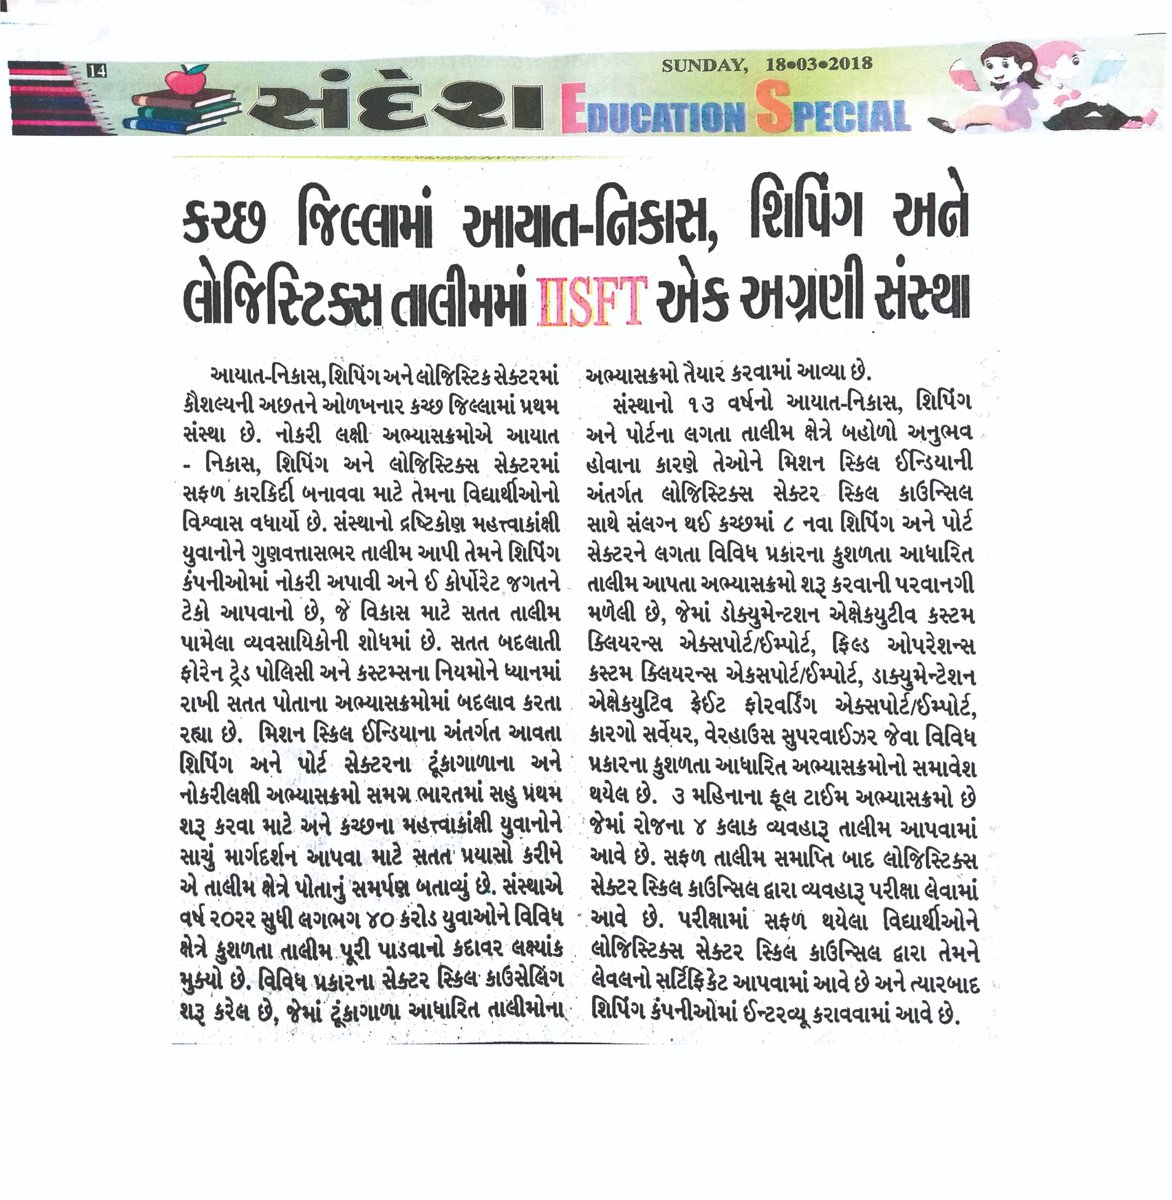 #News Article of @iisft in #Sandesh Conversing #IISFT as a quality #Training provider in the field of #Export #Import #Shipping  and #Logistics.  #SkillIndia #IISFT #GovernmentApprovedShippingCourses #LogisticsSkillCouncil #LSC #LSCShippingCourses #Education #Gandhidham https://t.co/4vG5OlS95D